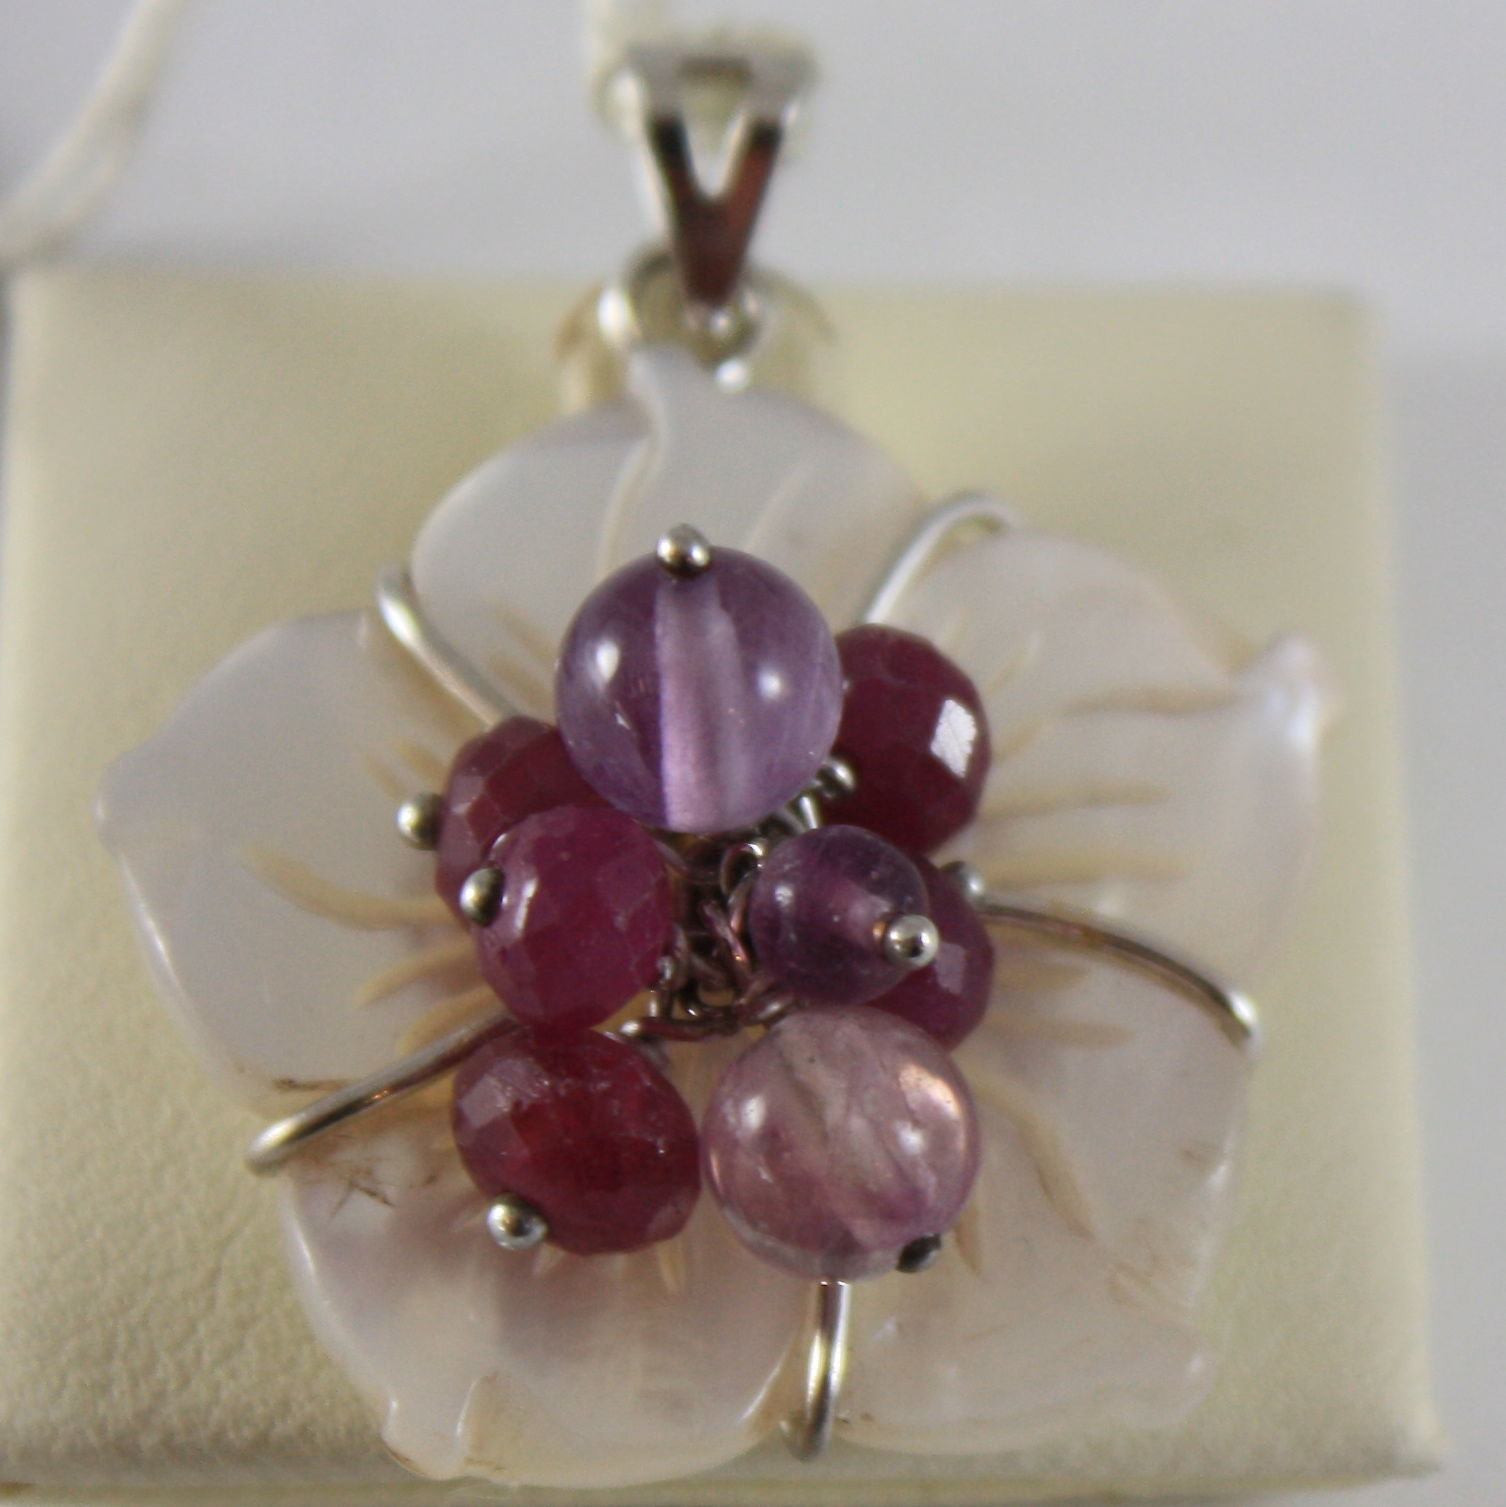 18K WHITE GOLD FLOWER PENDANT, MOTHER OF PEARL AMETHYST TOURMALINE MADE IN ITALY